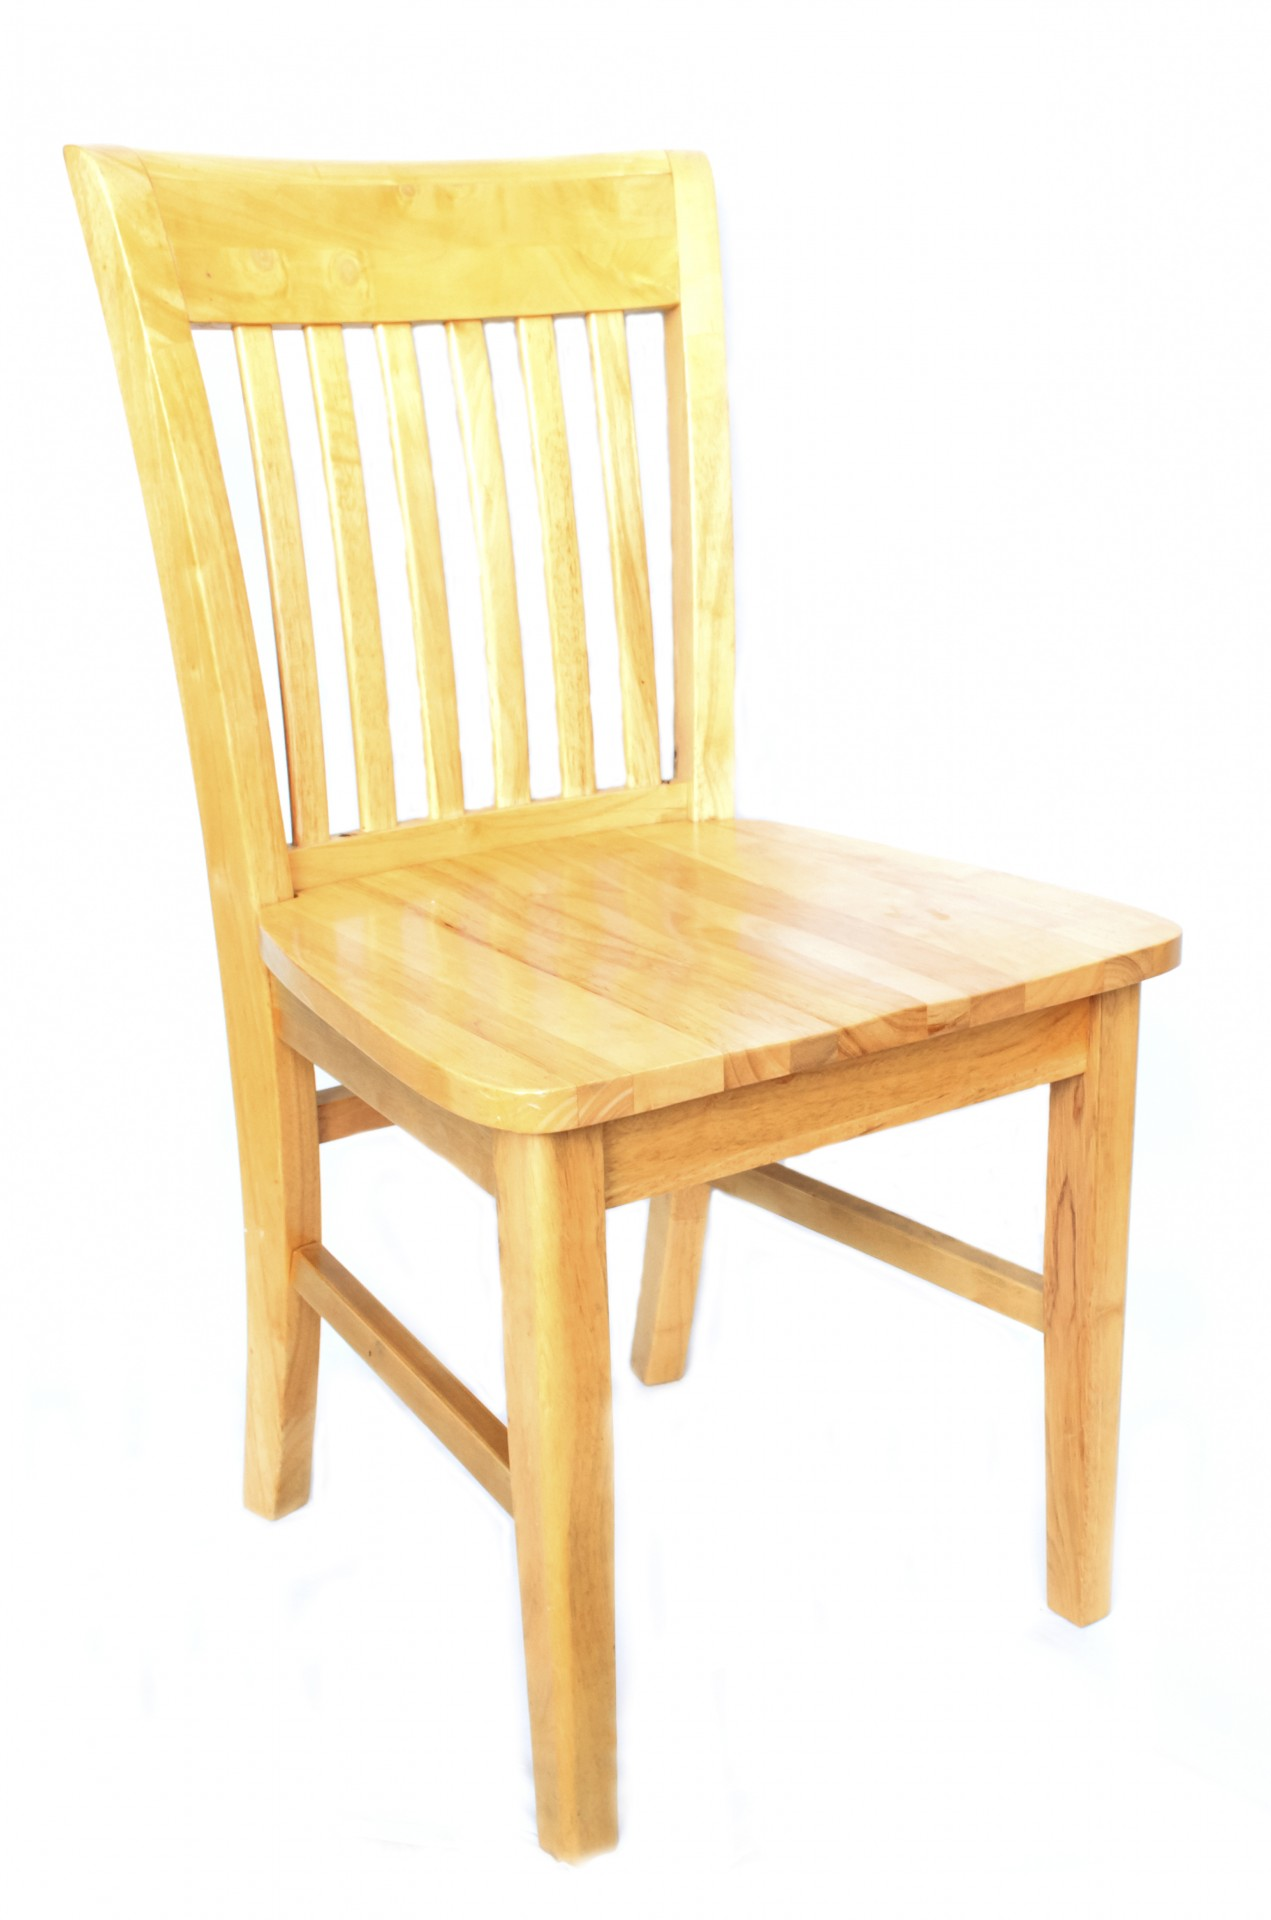 Chair,wooden,white,wood,pine - free image from needpix.com